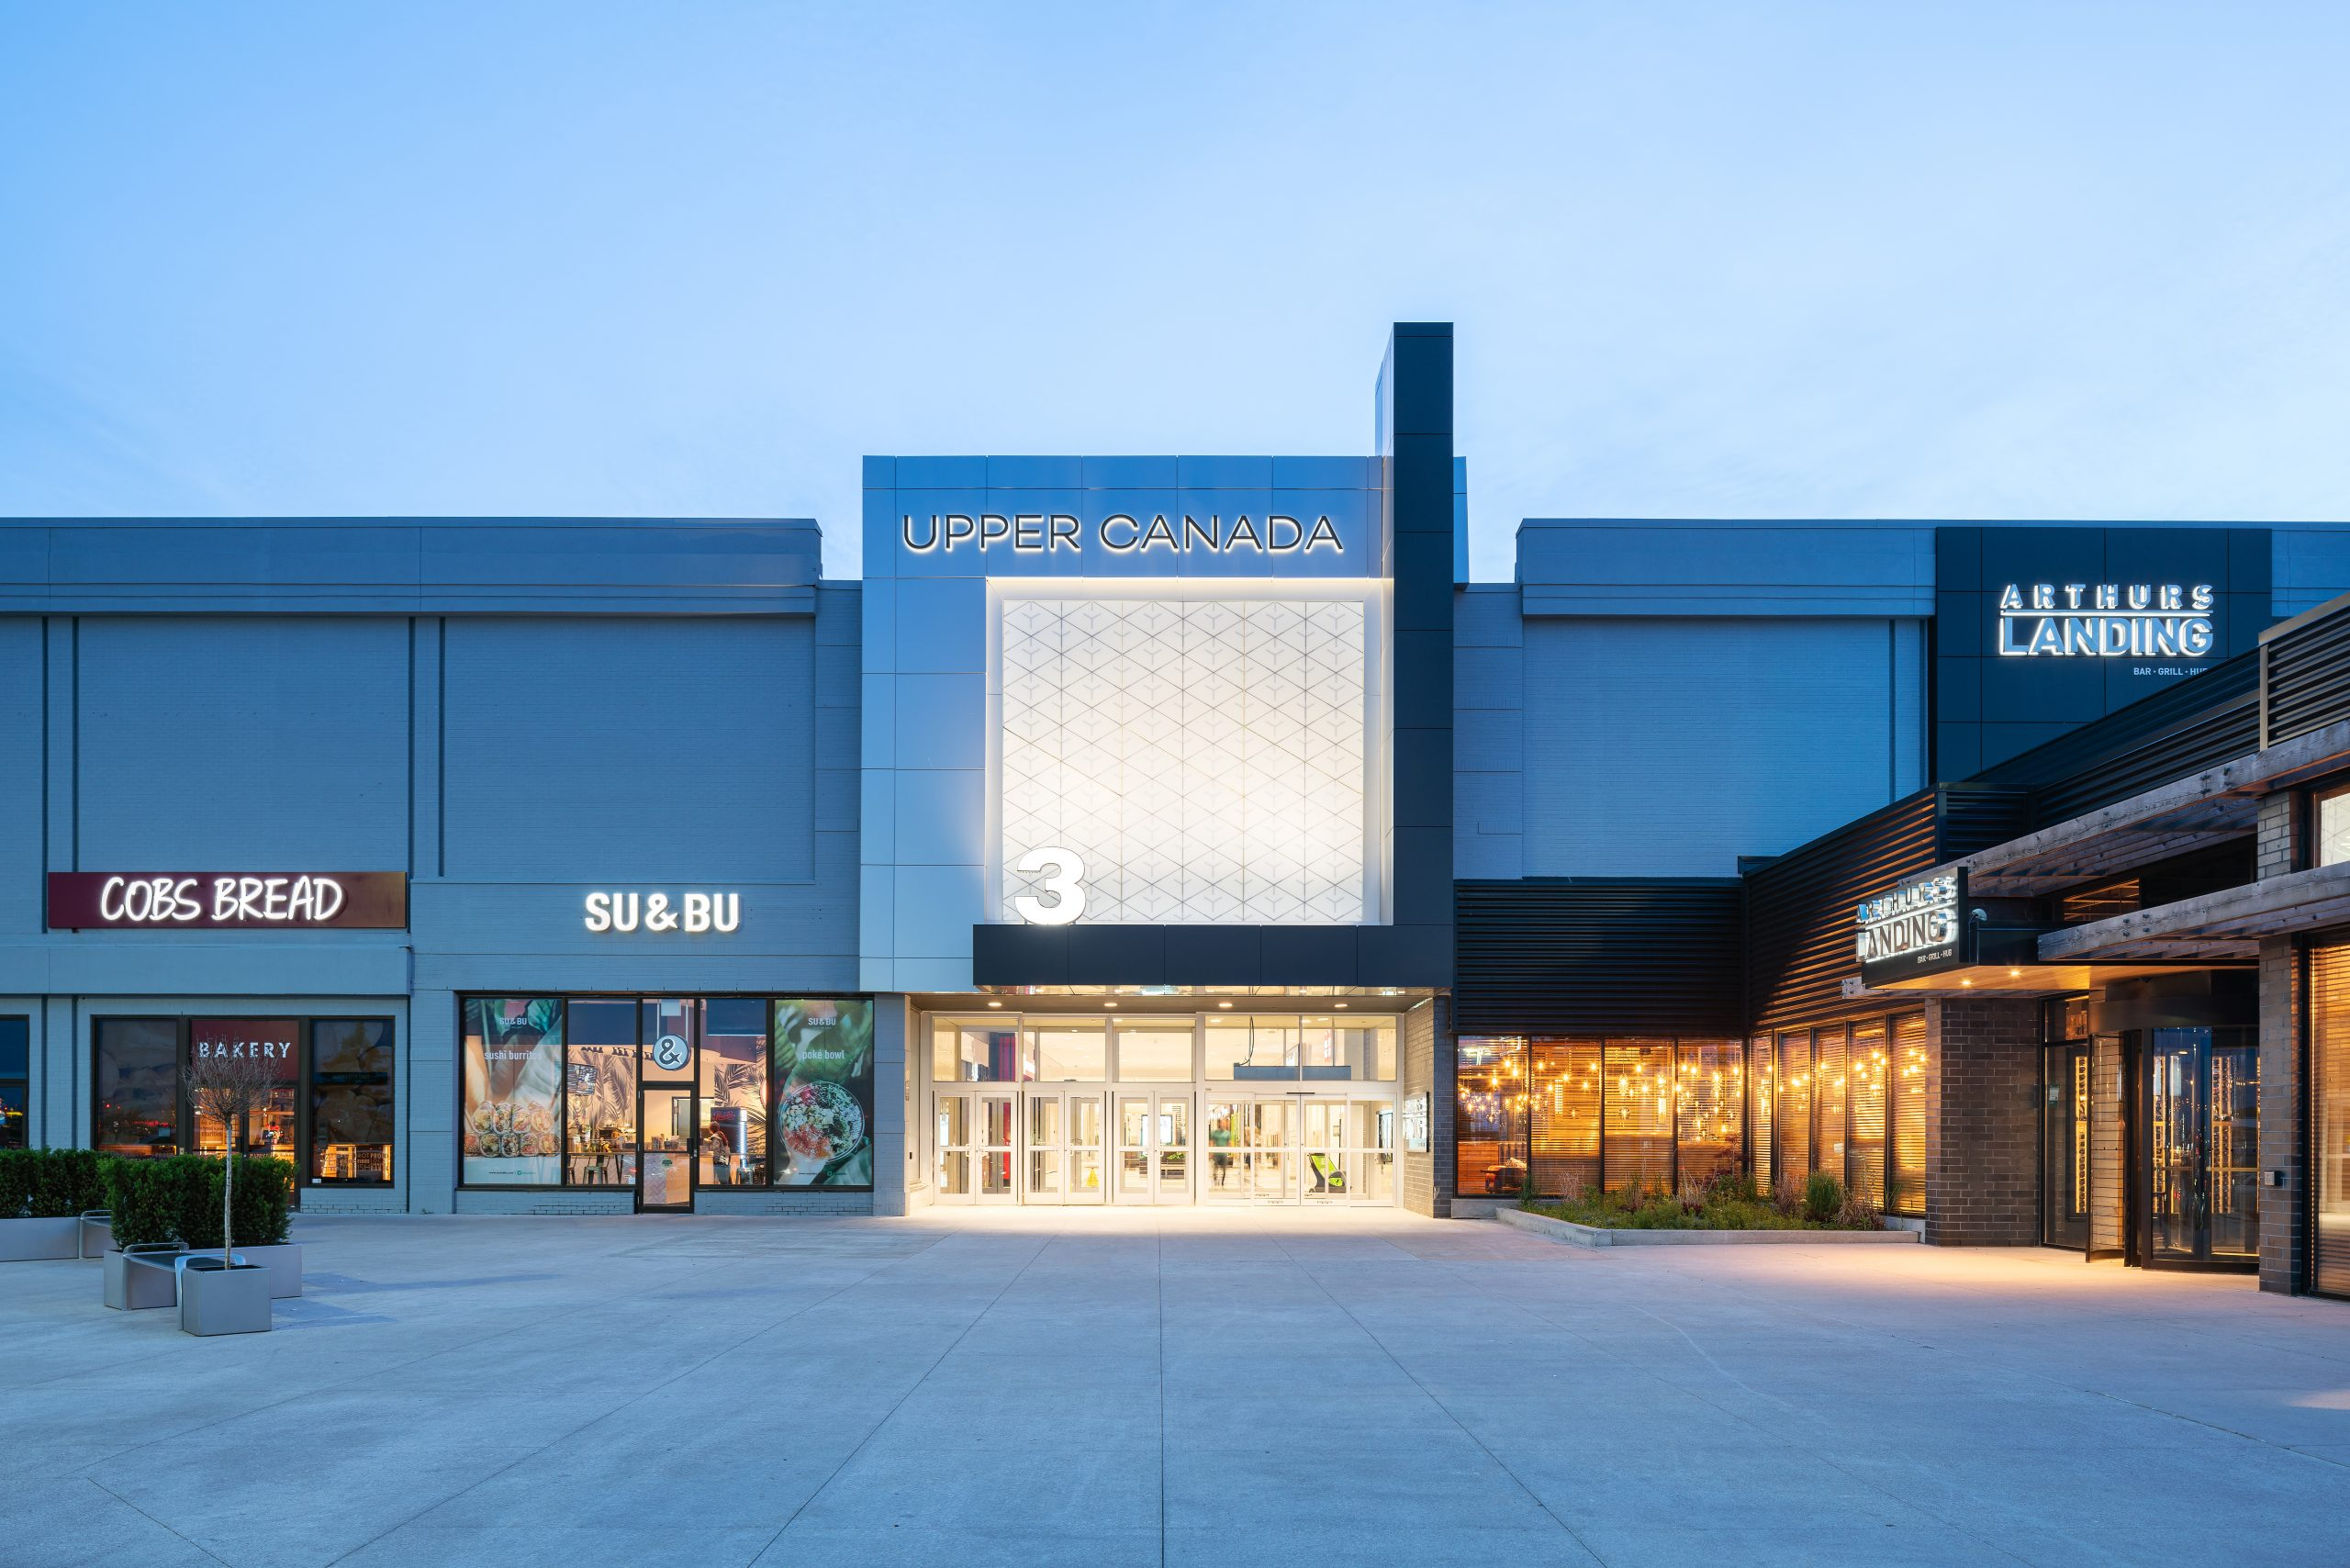 exterior upper canada mall entrance 3 in the evening